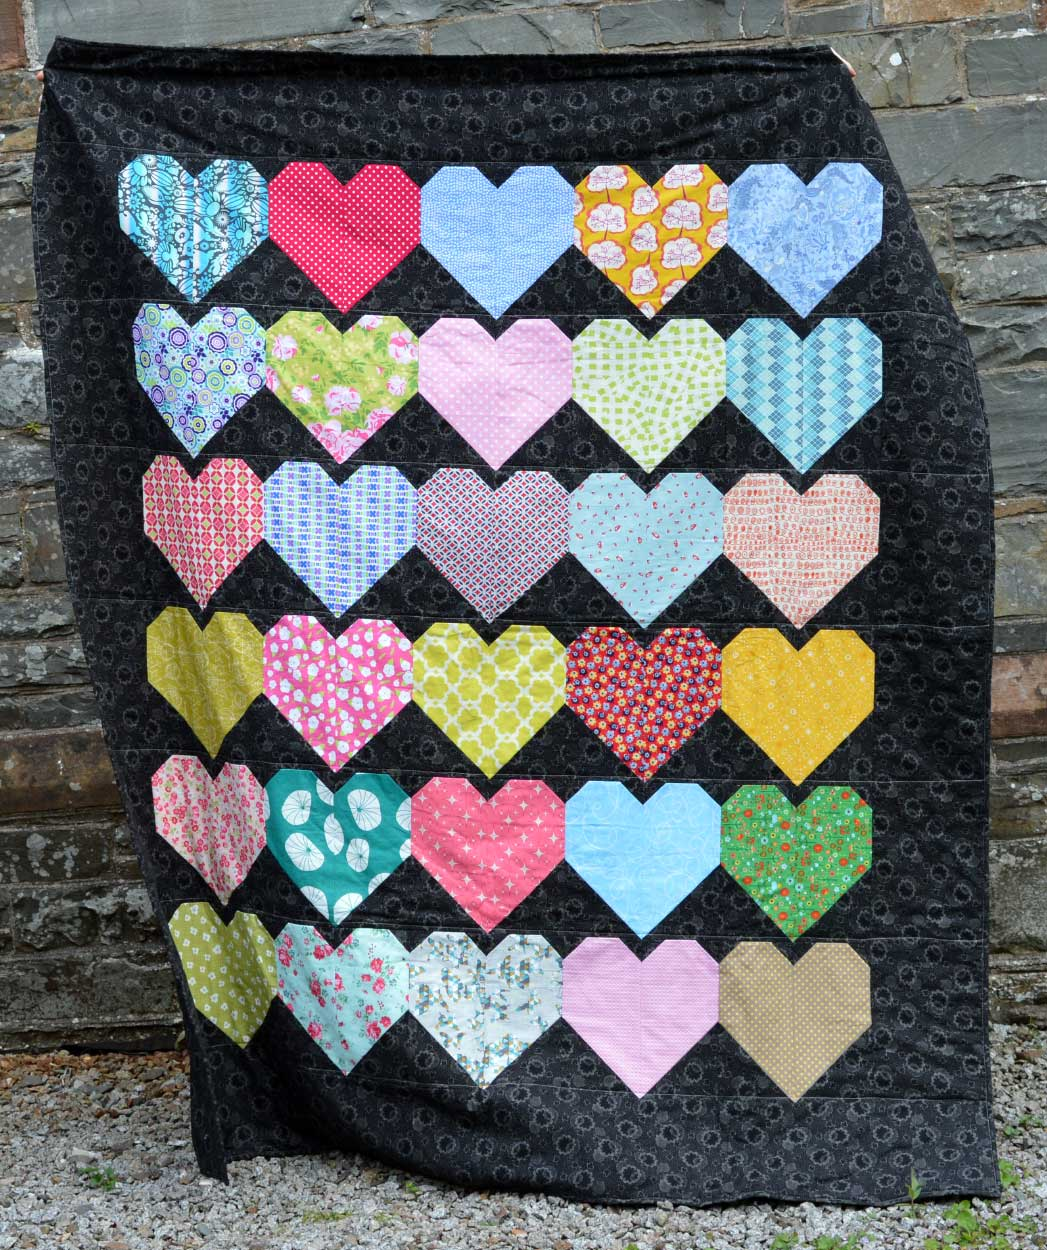 Quilts for Grenfell - Dumfries & Galloway Modern Quilt Guild (DGMQG) // Hearts Quilt